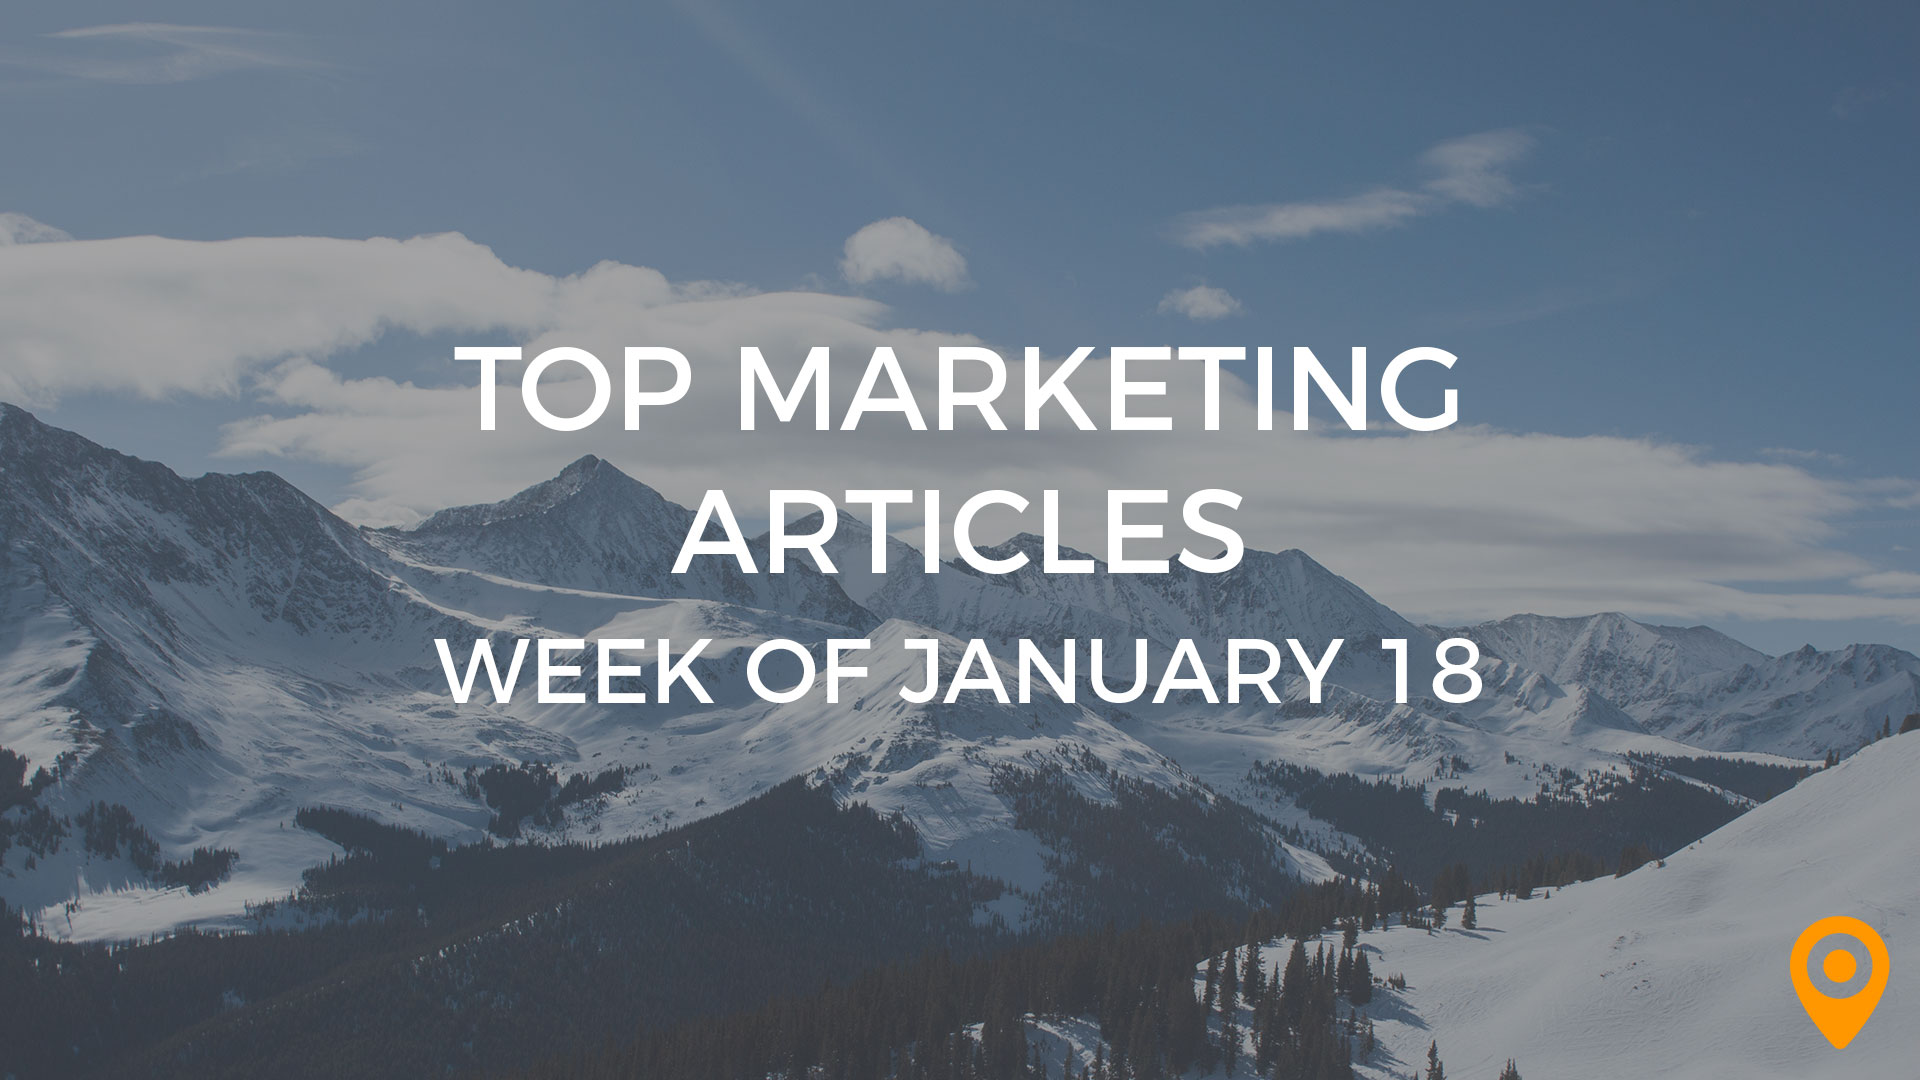 Top Marketing Articles Week of January 18